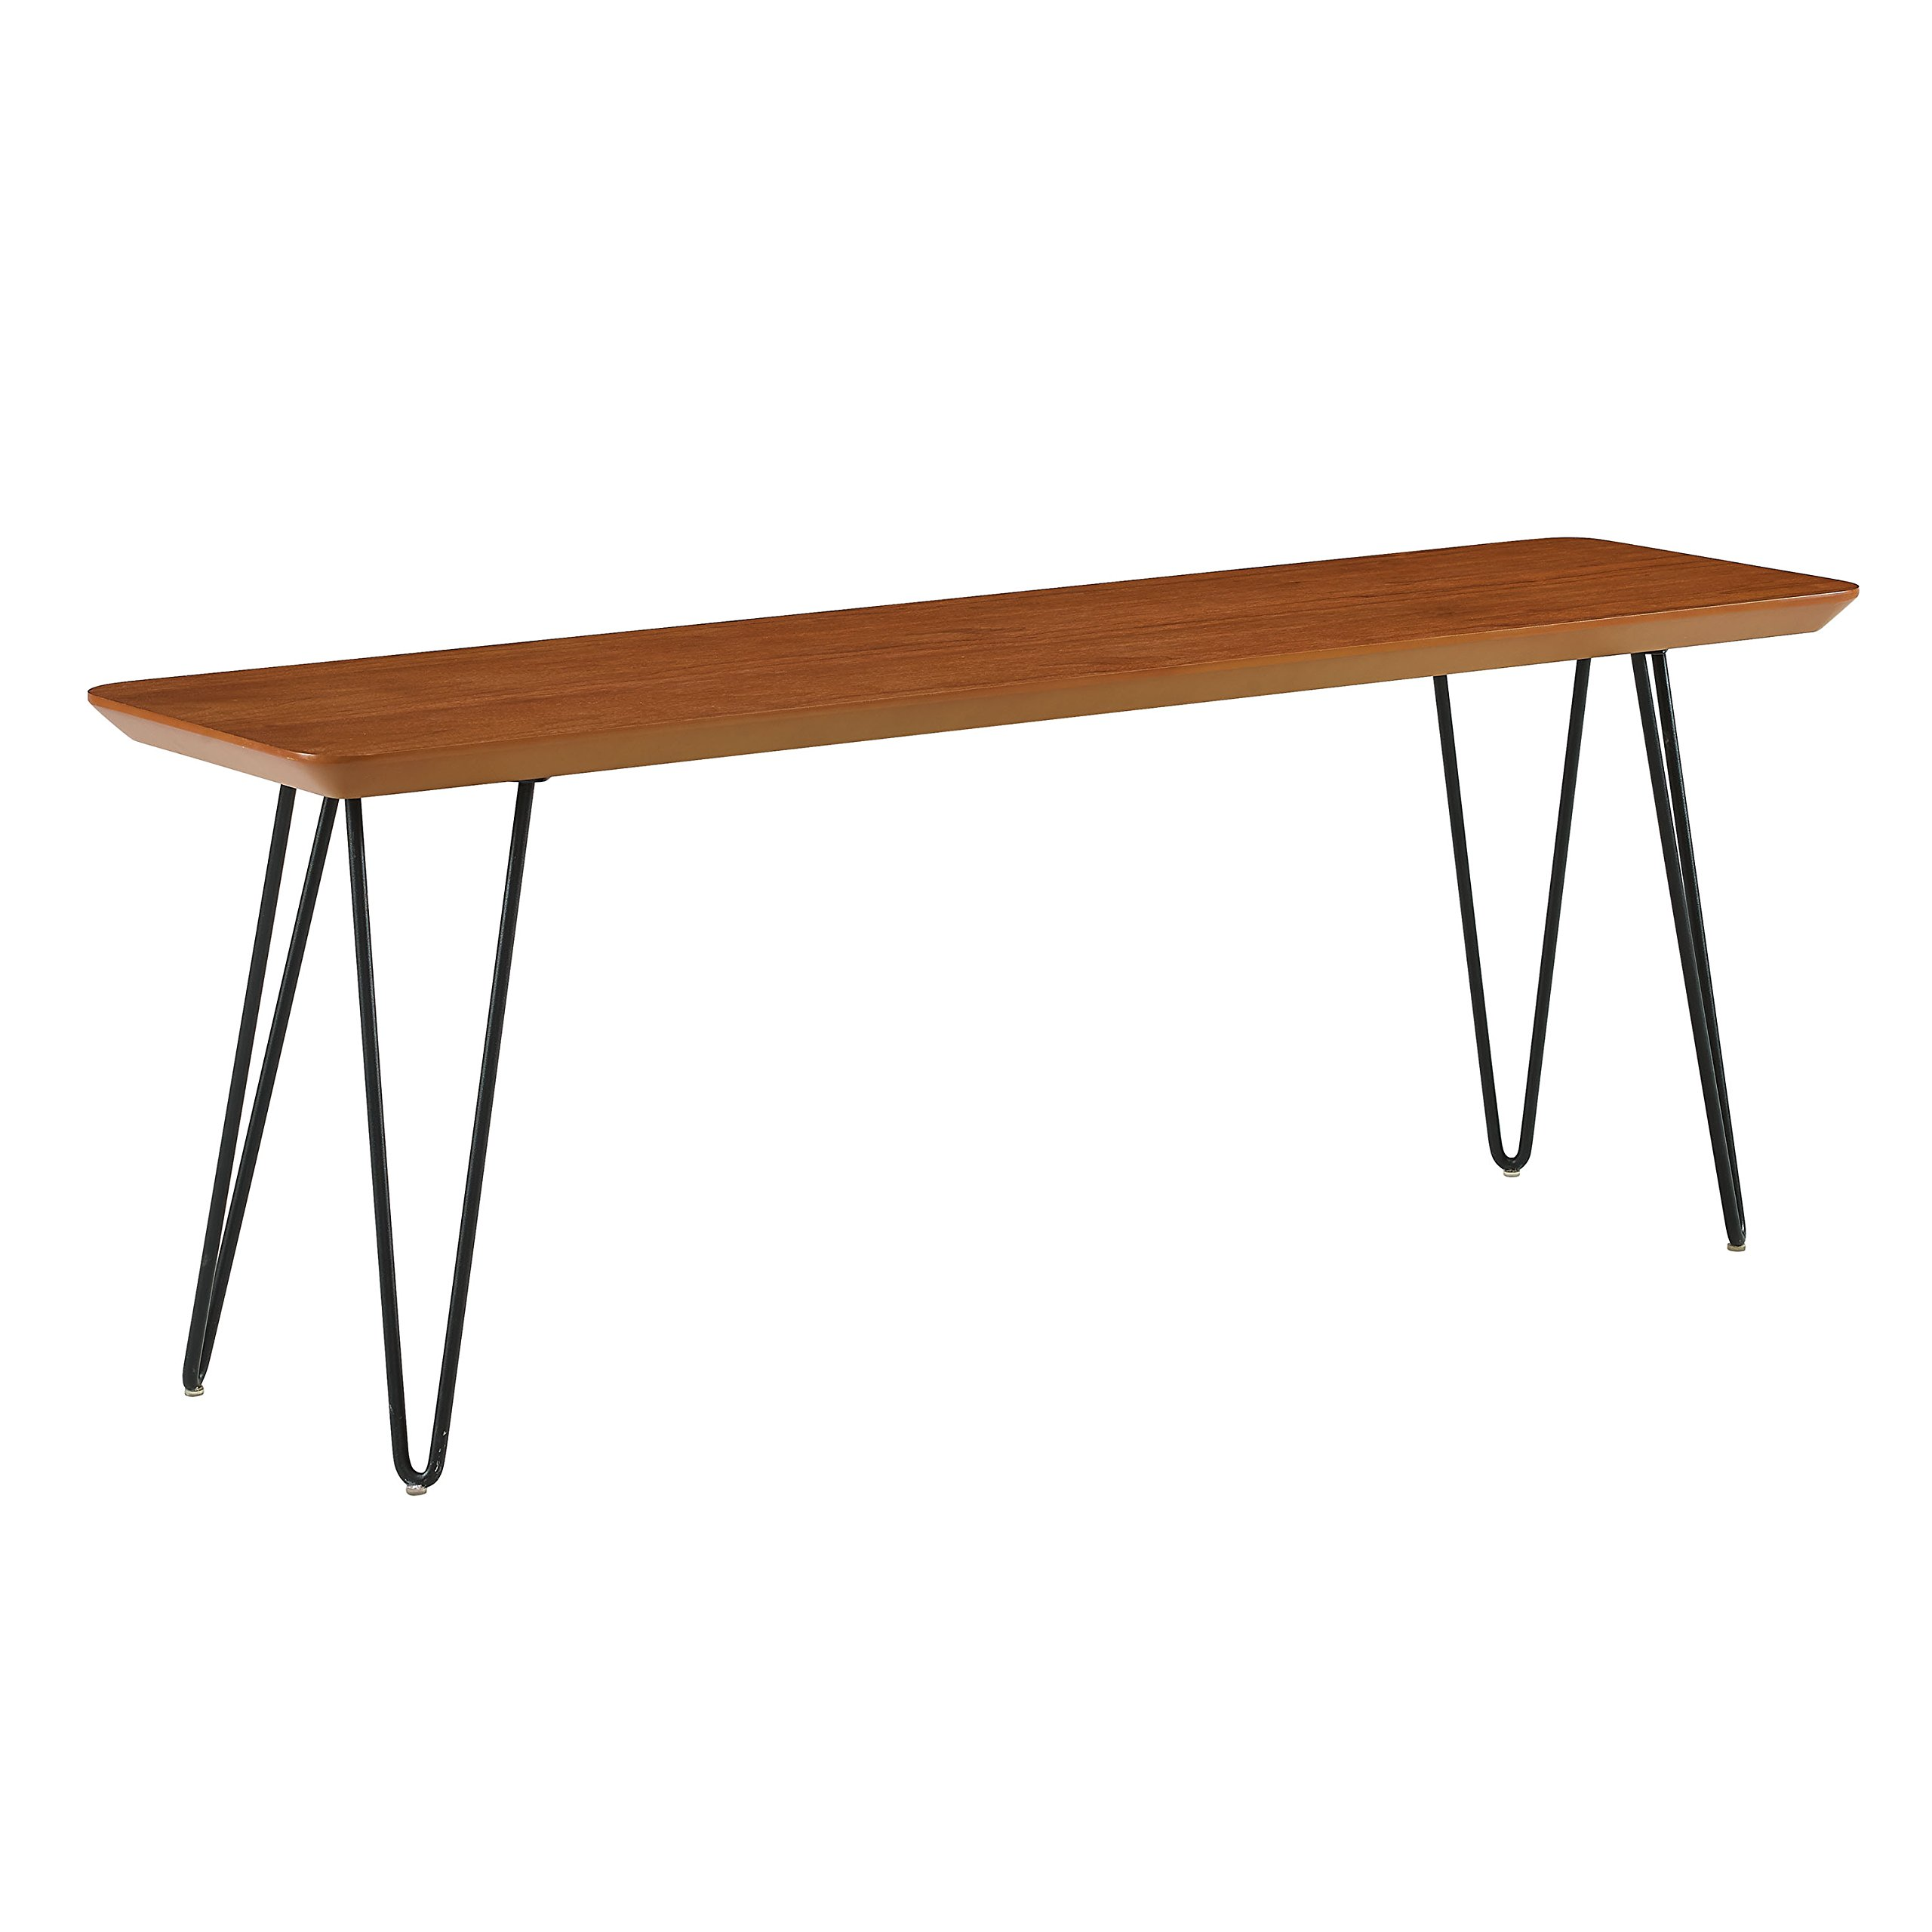 WE Furniture AZB56HPDWT Dining Bench, 13'' L x 48'' W x 18'' H, Walnut